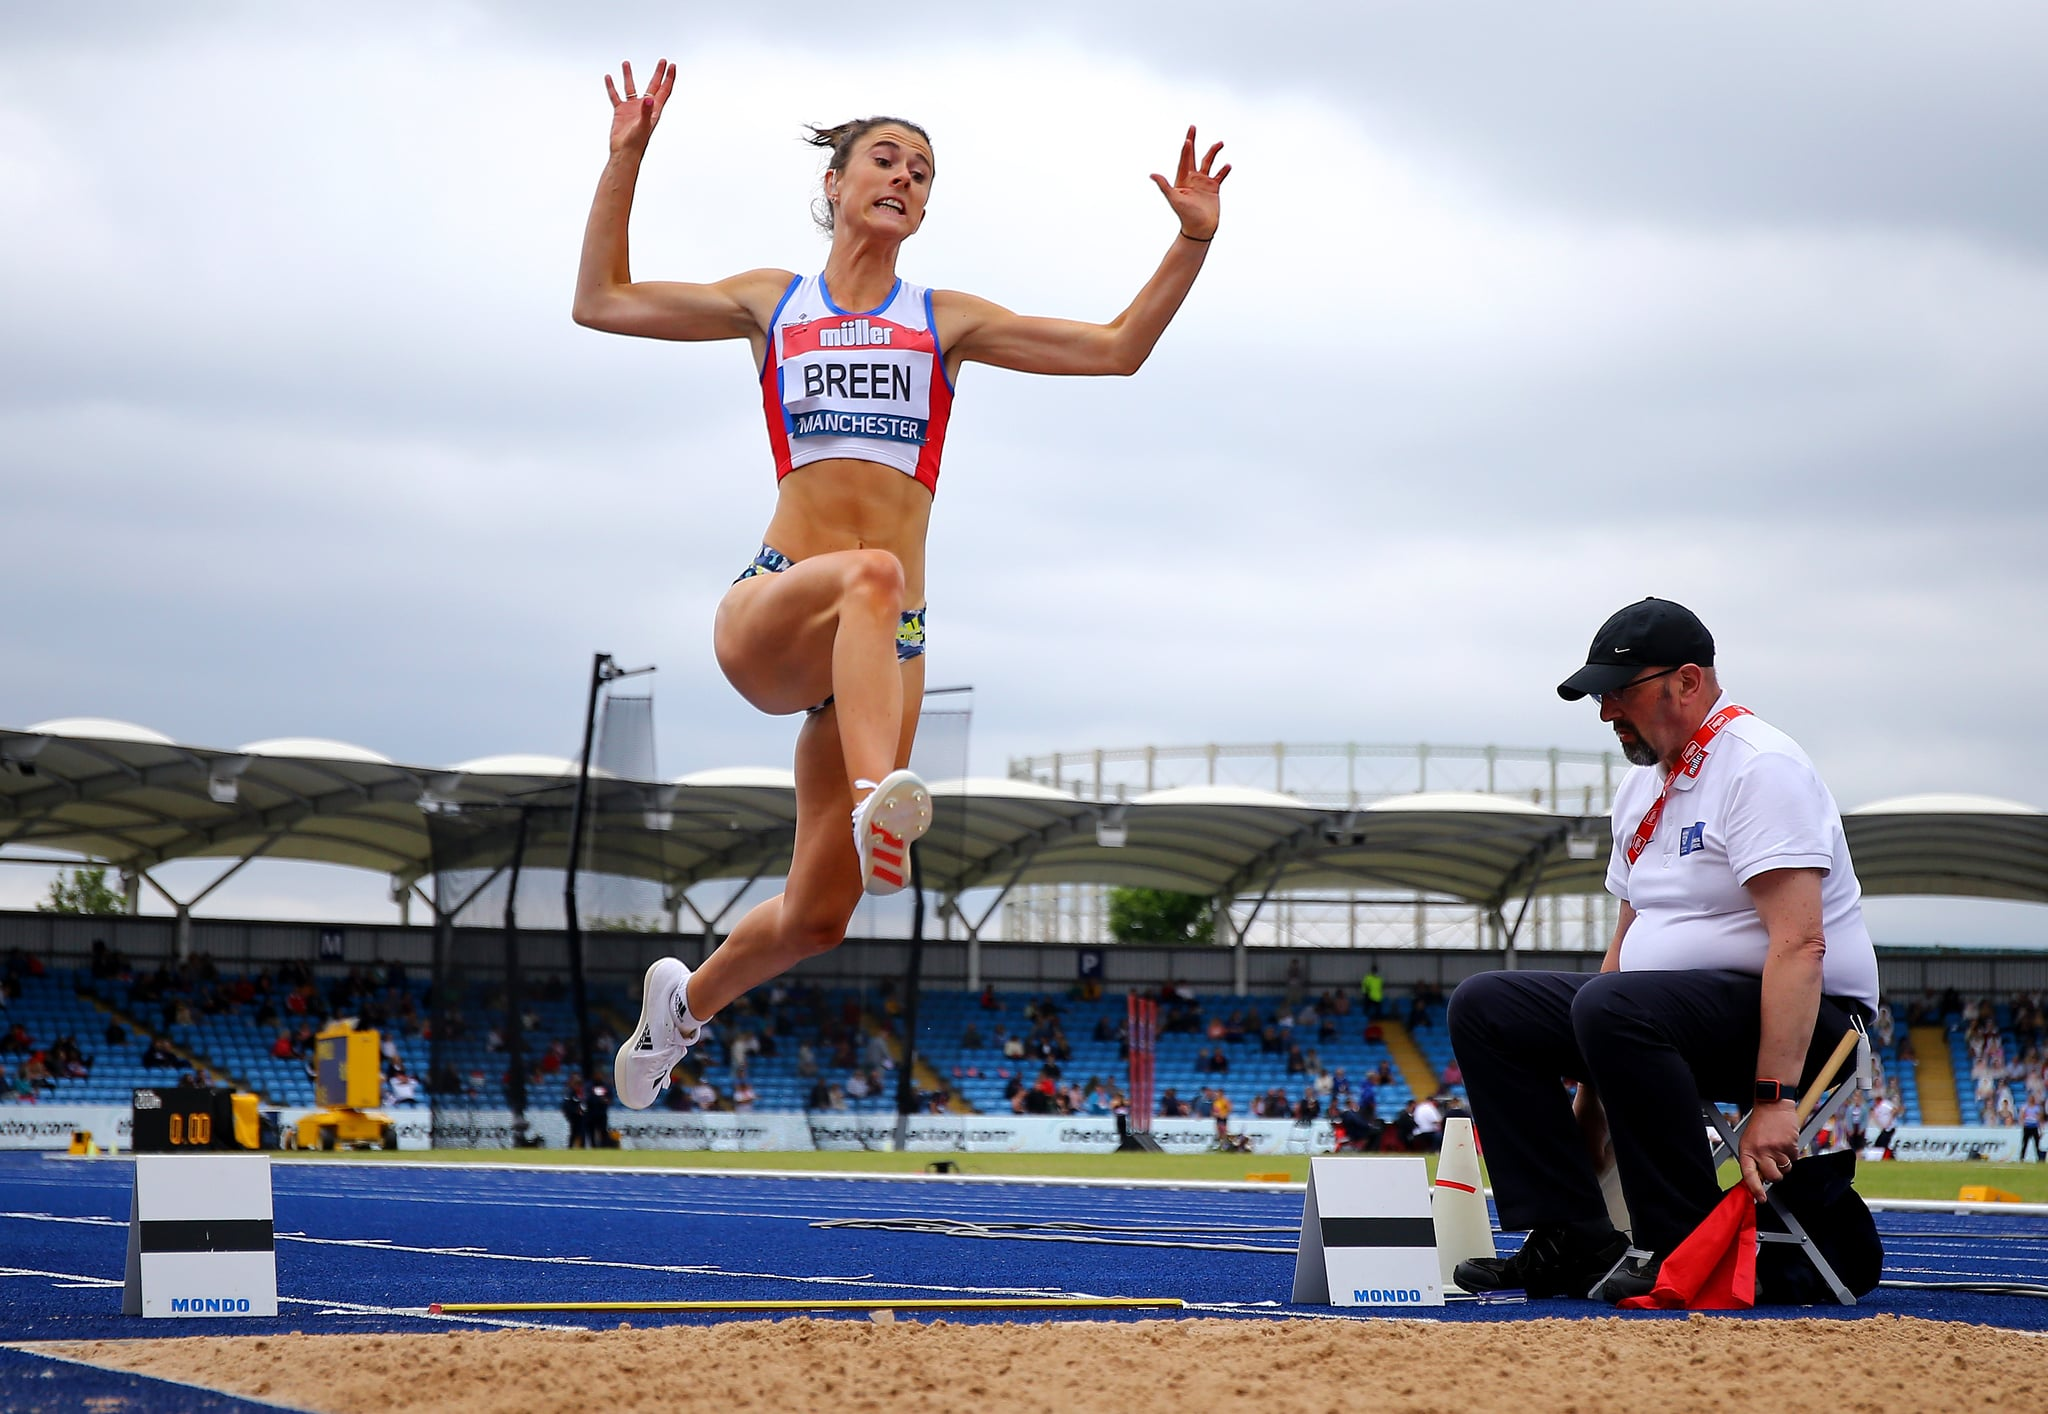 MANCHESTER, ENGLAND - JUNE 27: Olivia Breen of Portsmouth competes during the Womens Long Jump Final on Day Three of the Muller British Athletics Championships at Manchester Regional Arena on June 27, 2021 in Manchester, England. (Photo by Ashley Allen/Getty Images)